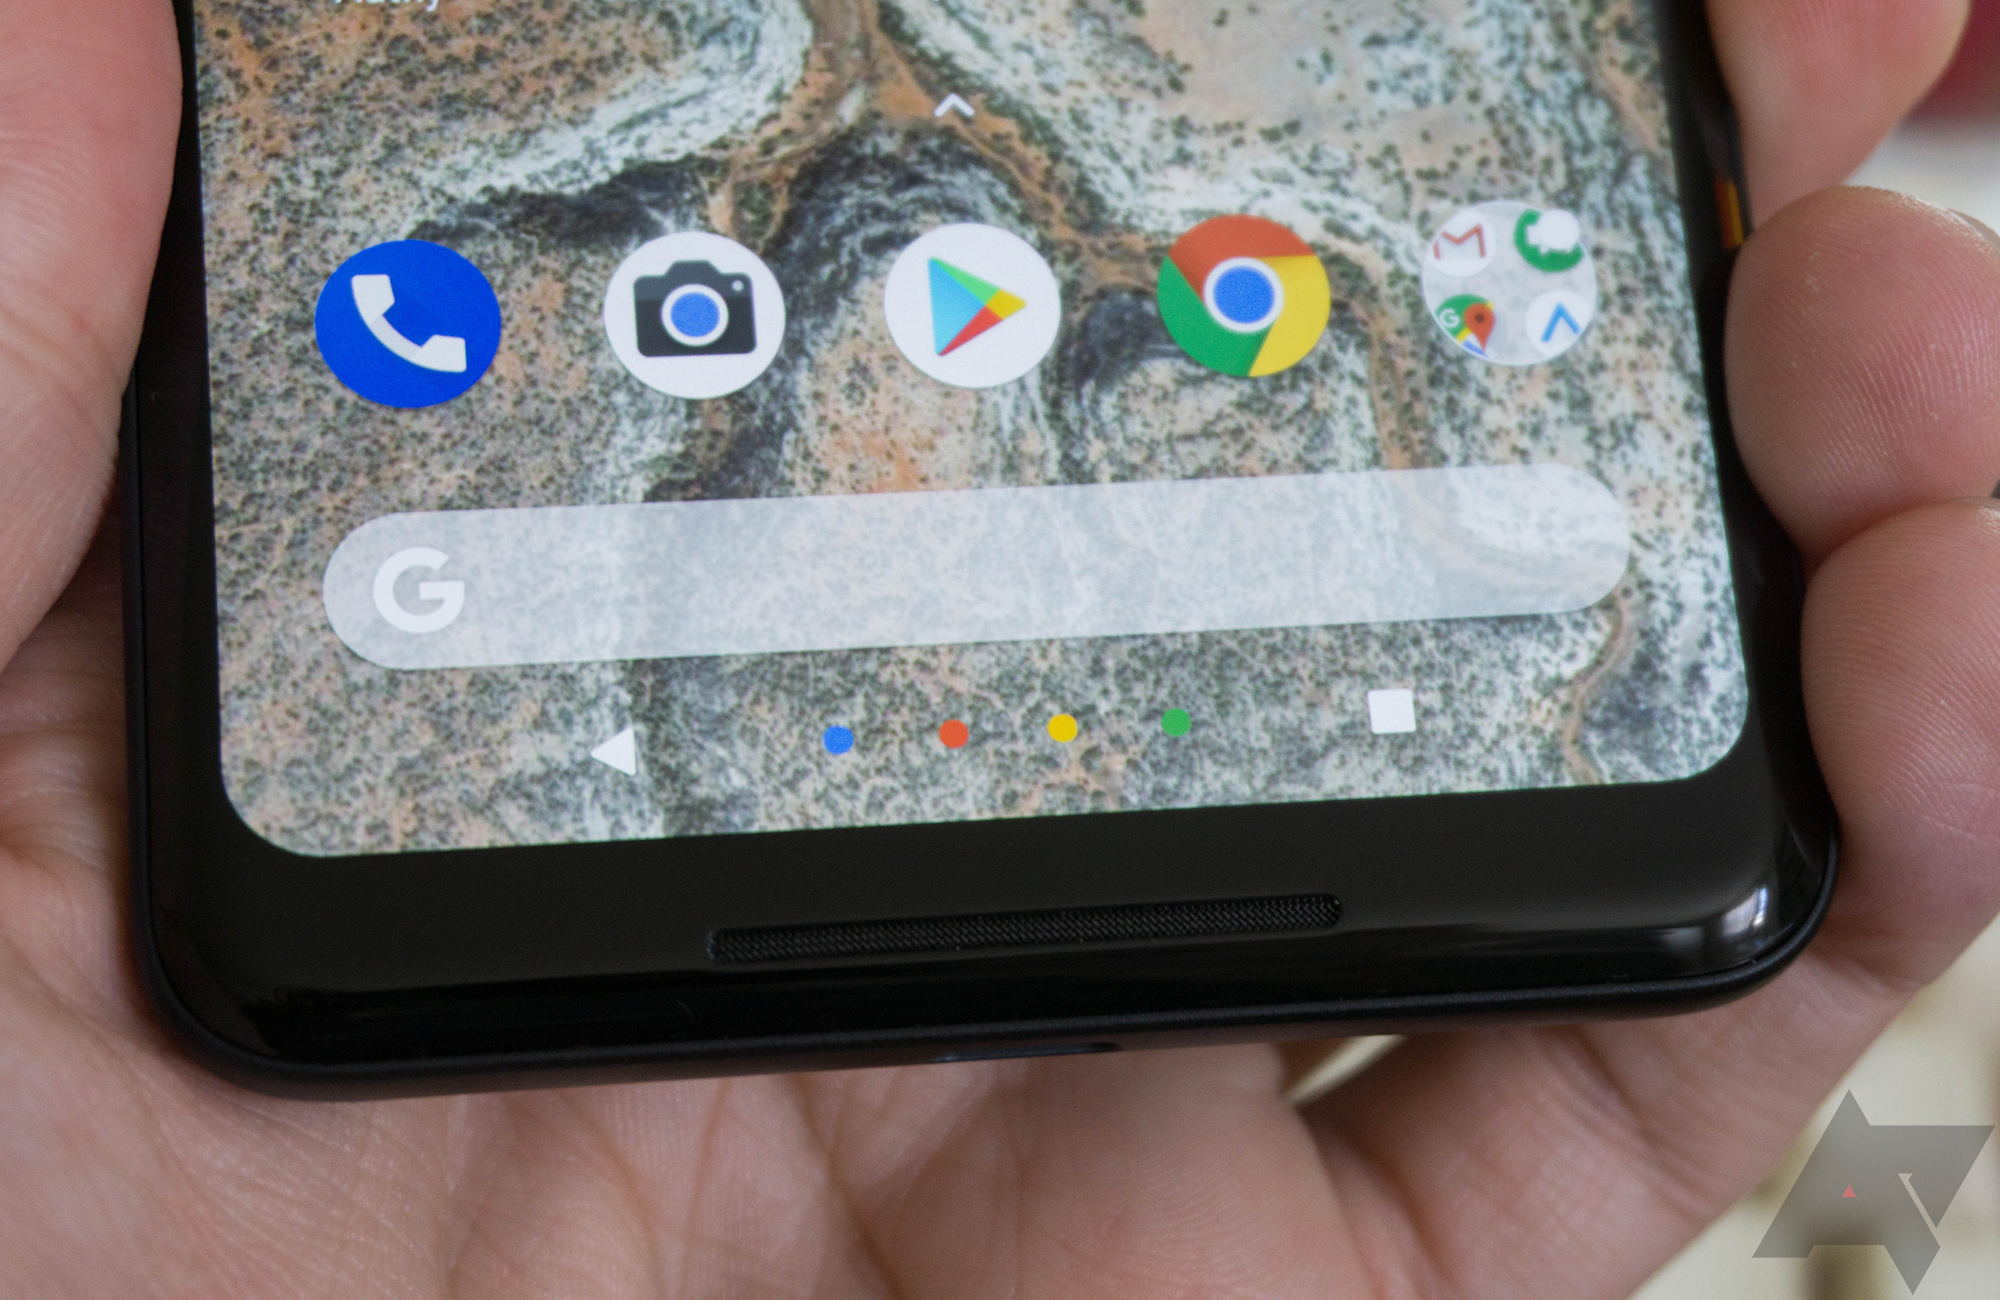 Android Q Beta has hidden option for remapping Pixel squeeze gesture to other assistant apps